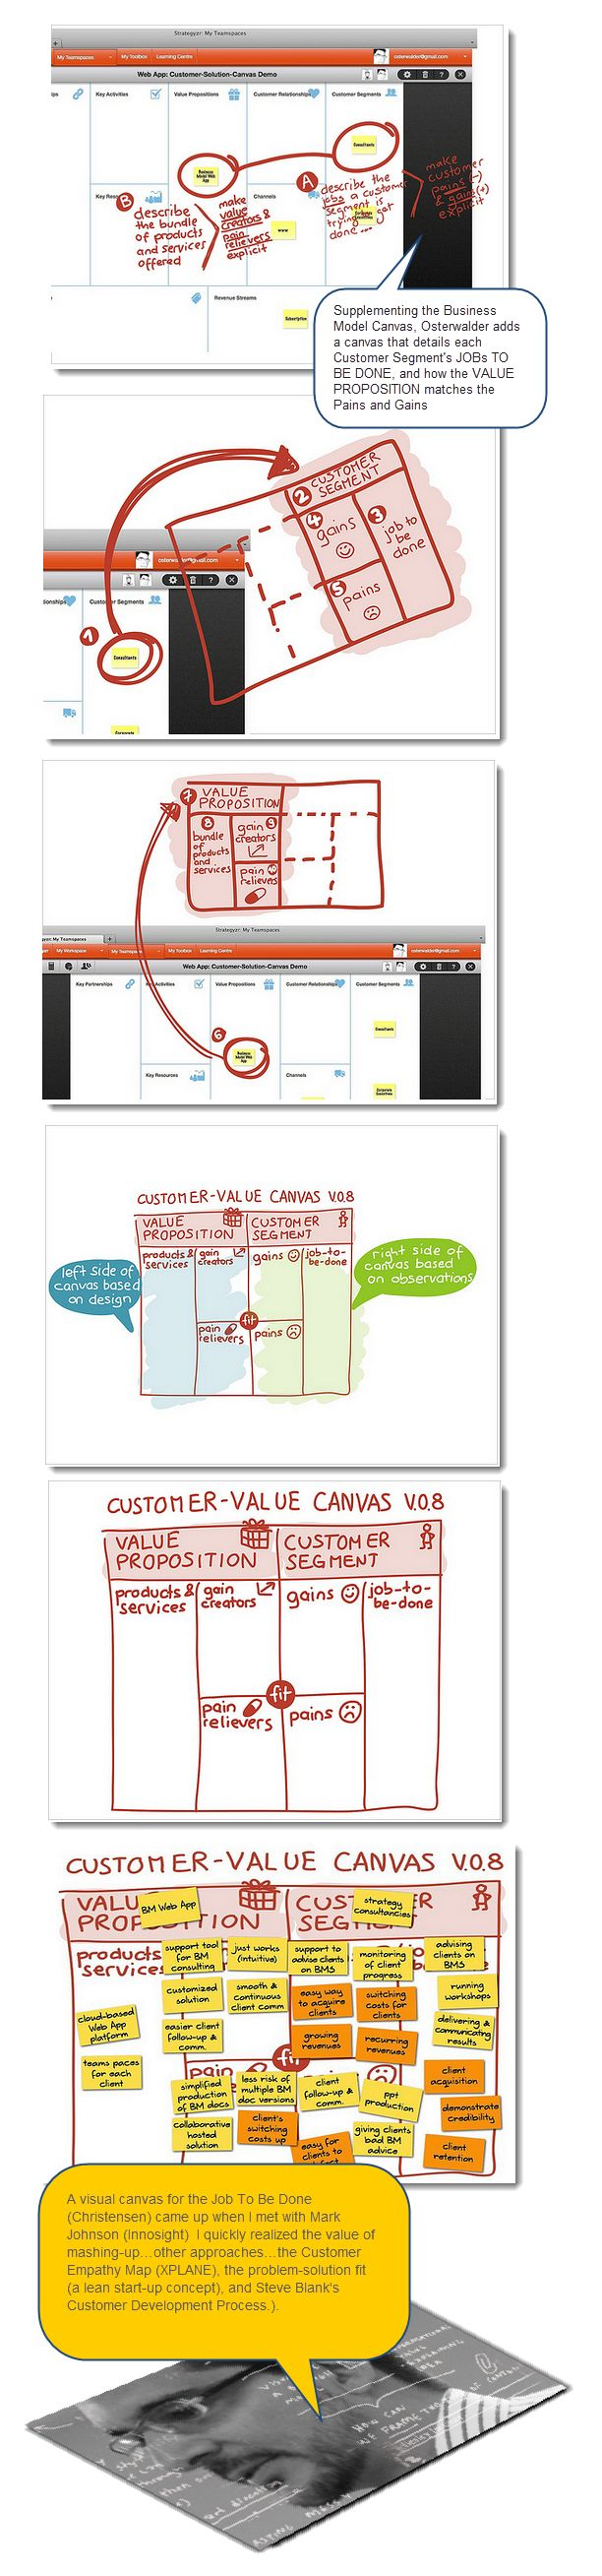 Service operation processes service strategy service design service - Customer Value Canvas To Supplement The Original Bmc Osterwalder Find This Pin And More On Service Design